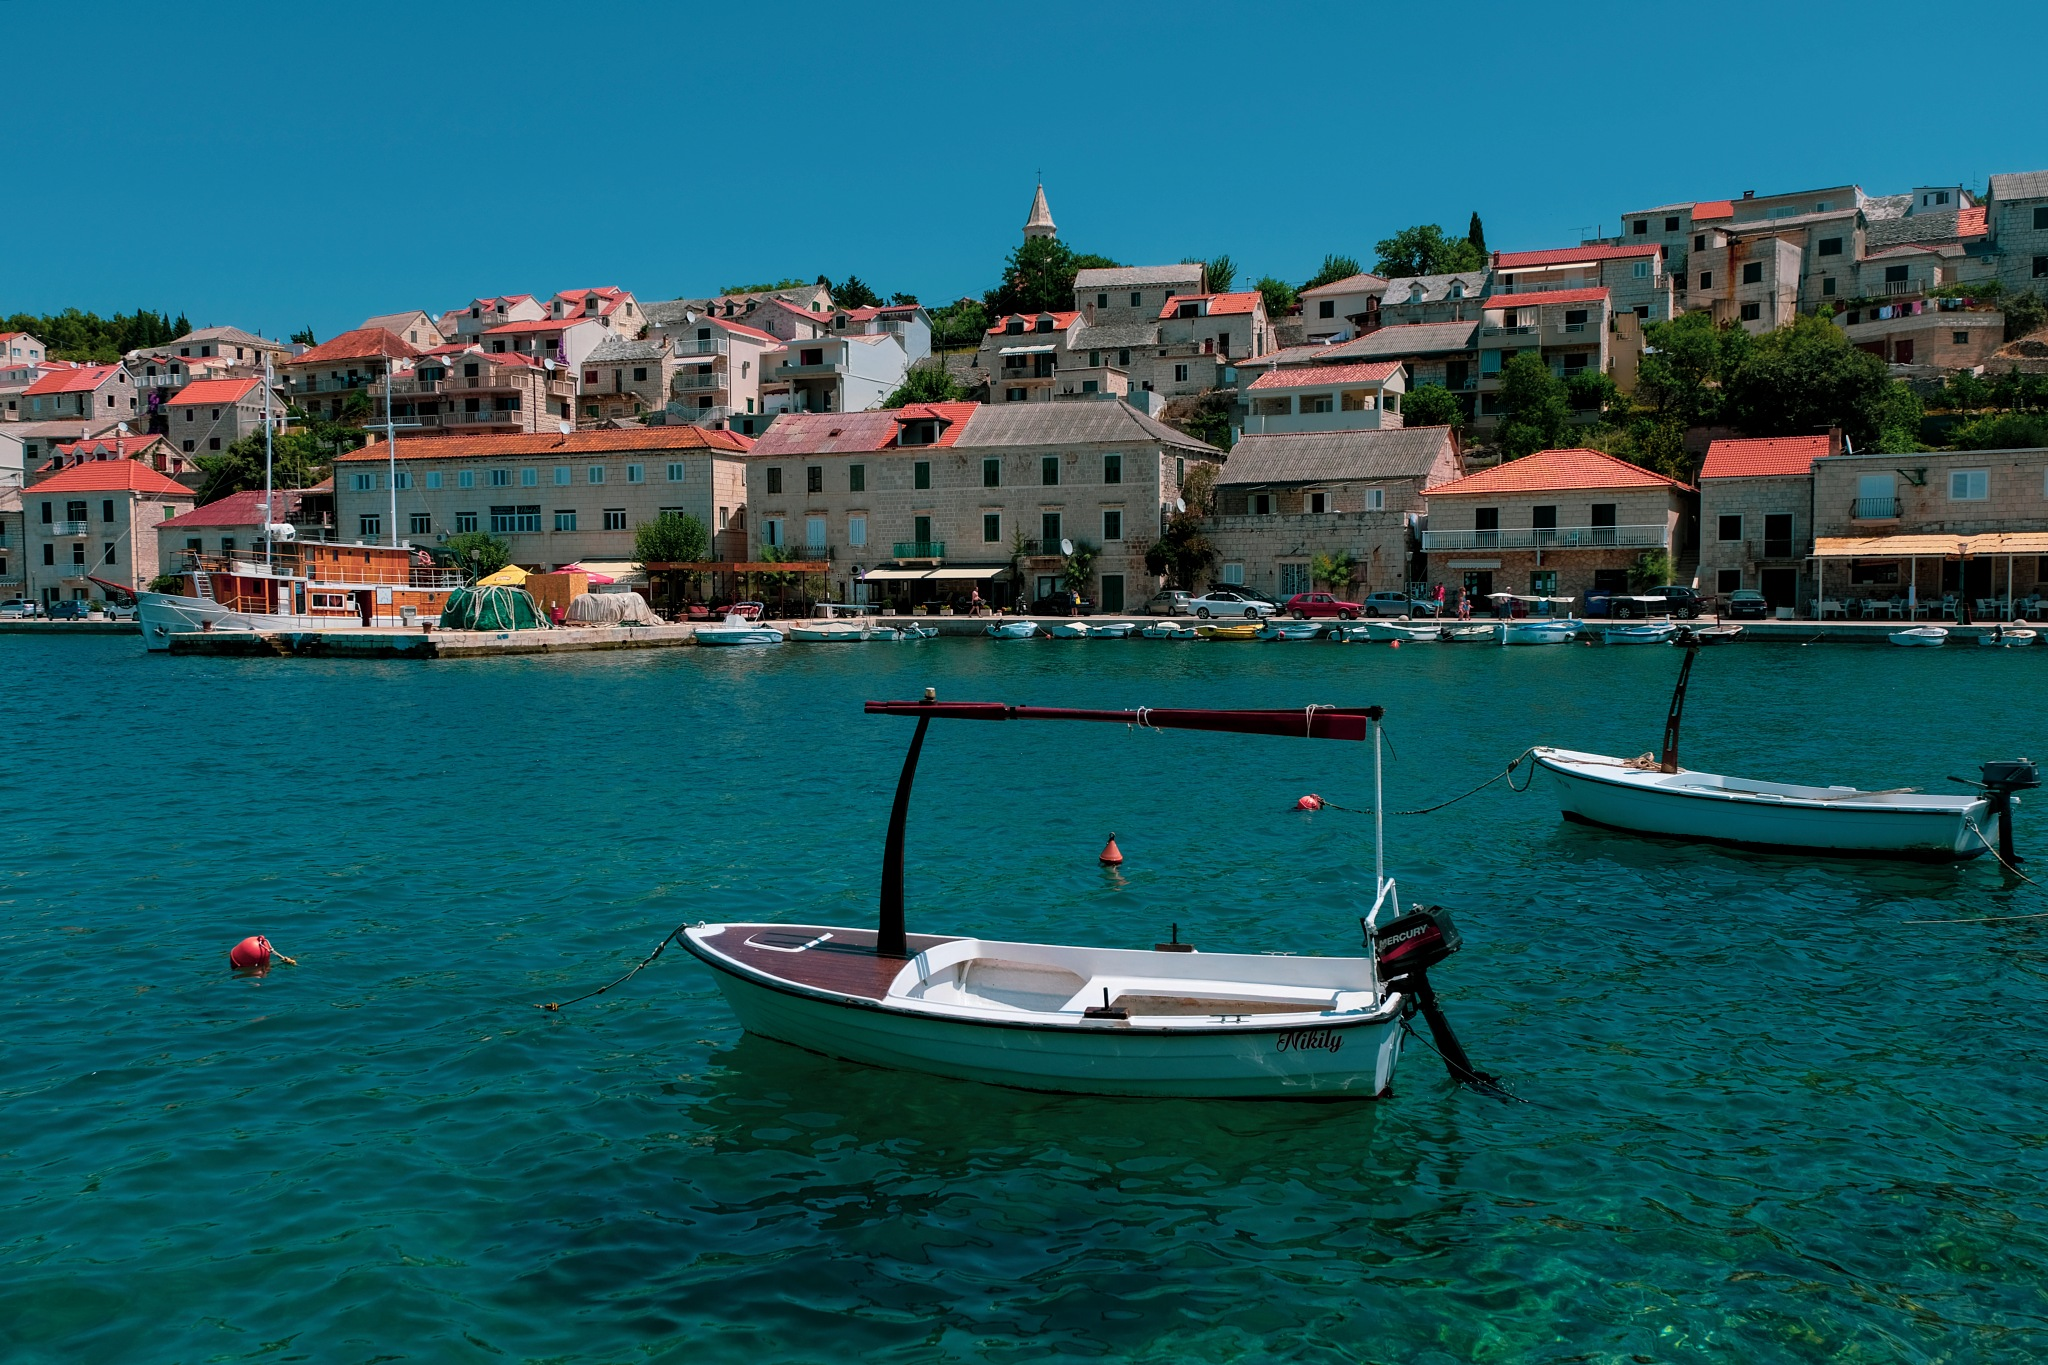 Summer in Croatia :BRAC ISLAND by Goran Jorganovich